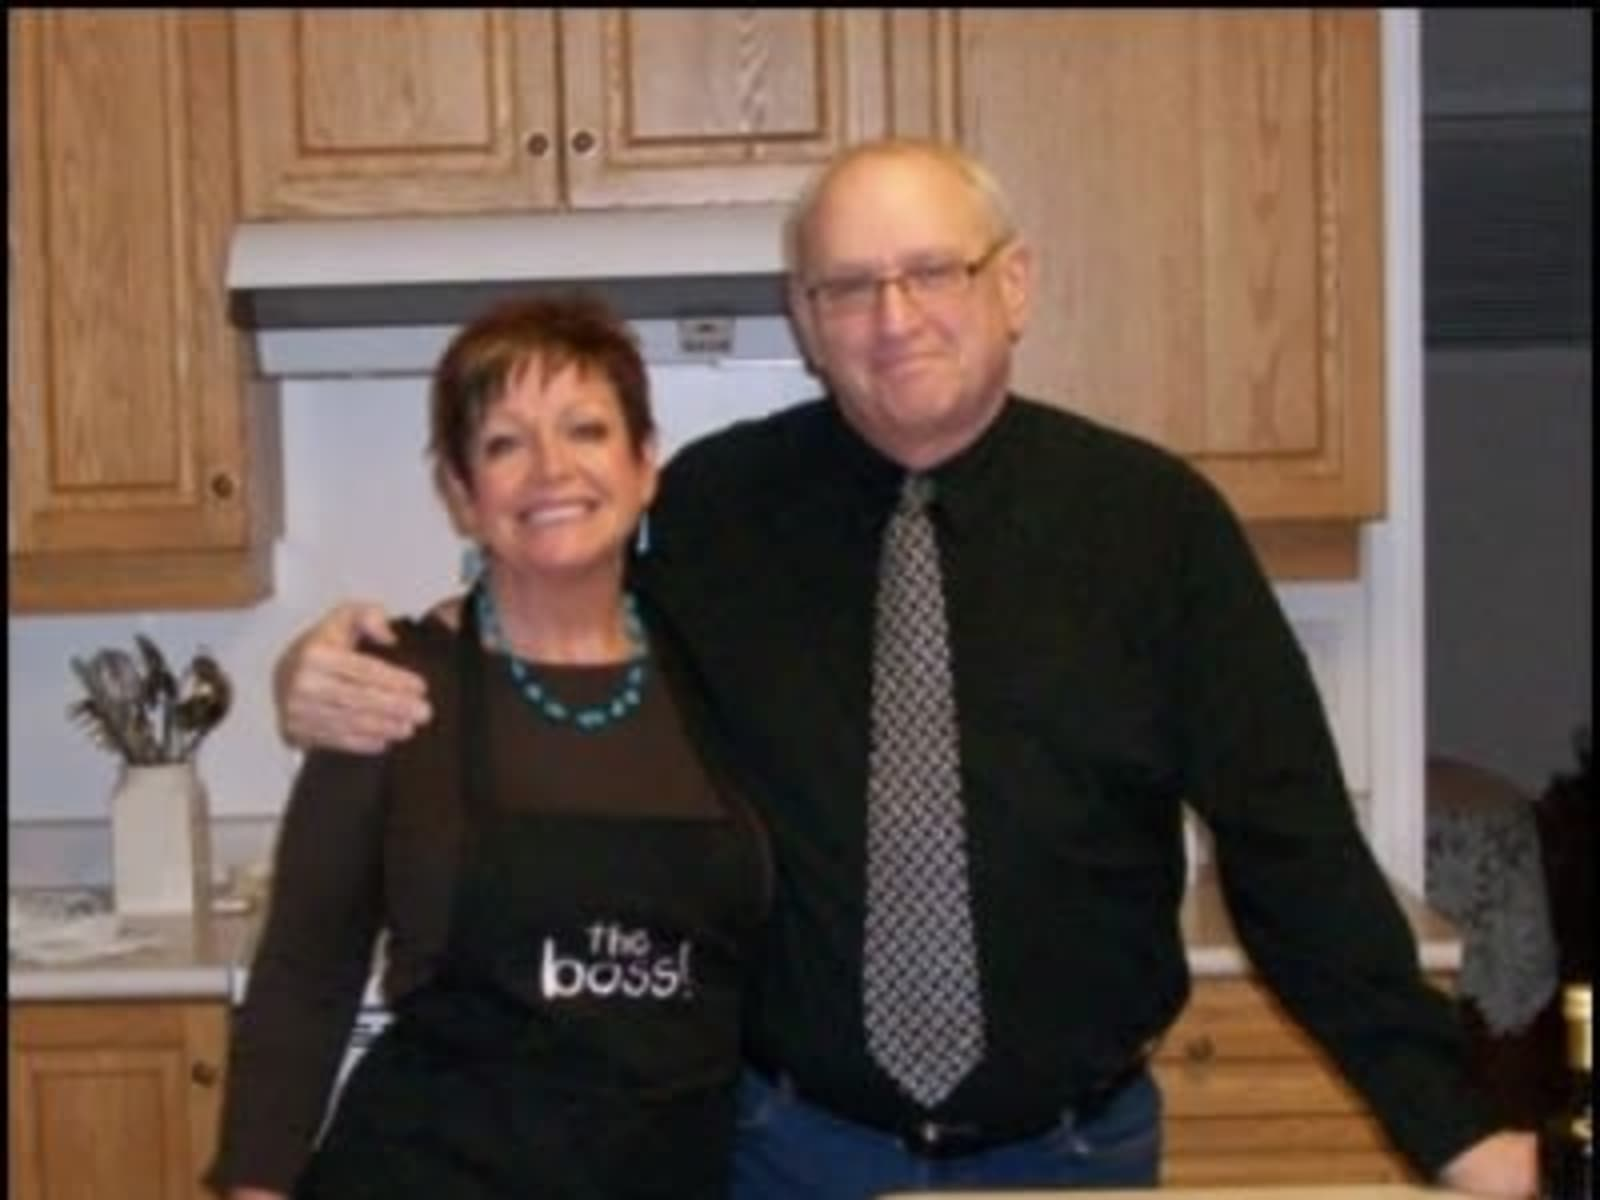 Dave & Debra from Courtenay, British Columbia, Canada